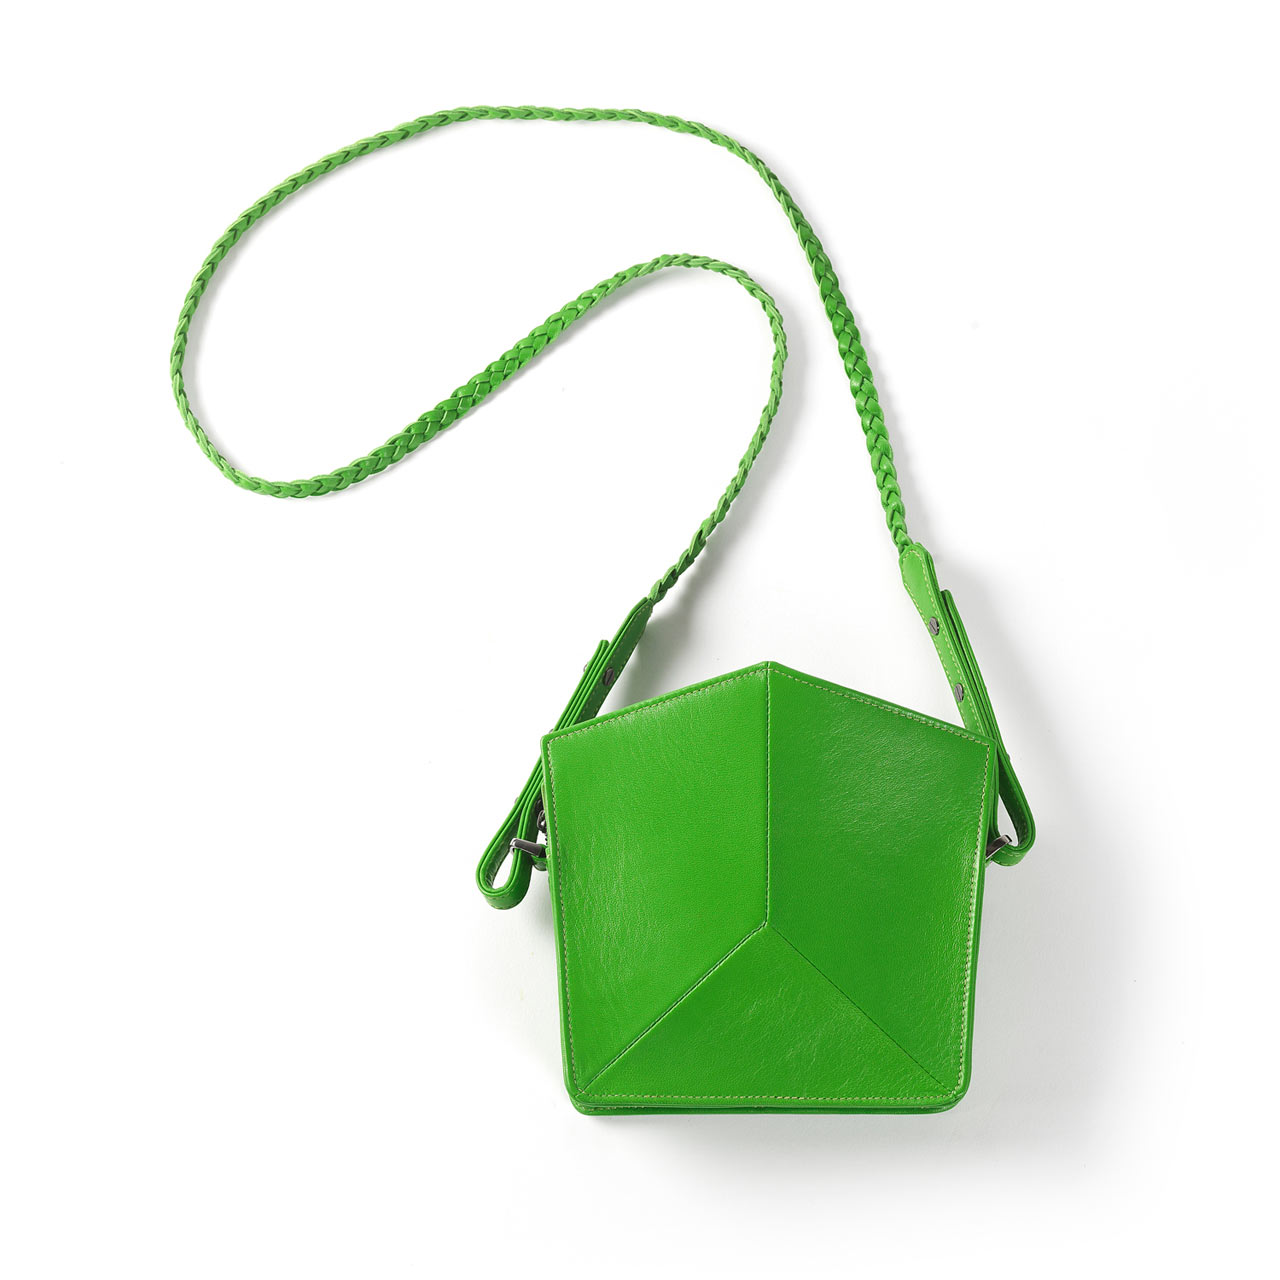 Imago-A-Prism-Bags-7-Mini-Bag-Avo